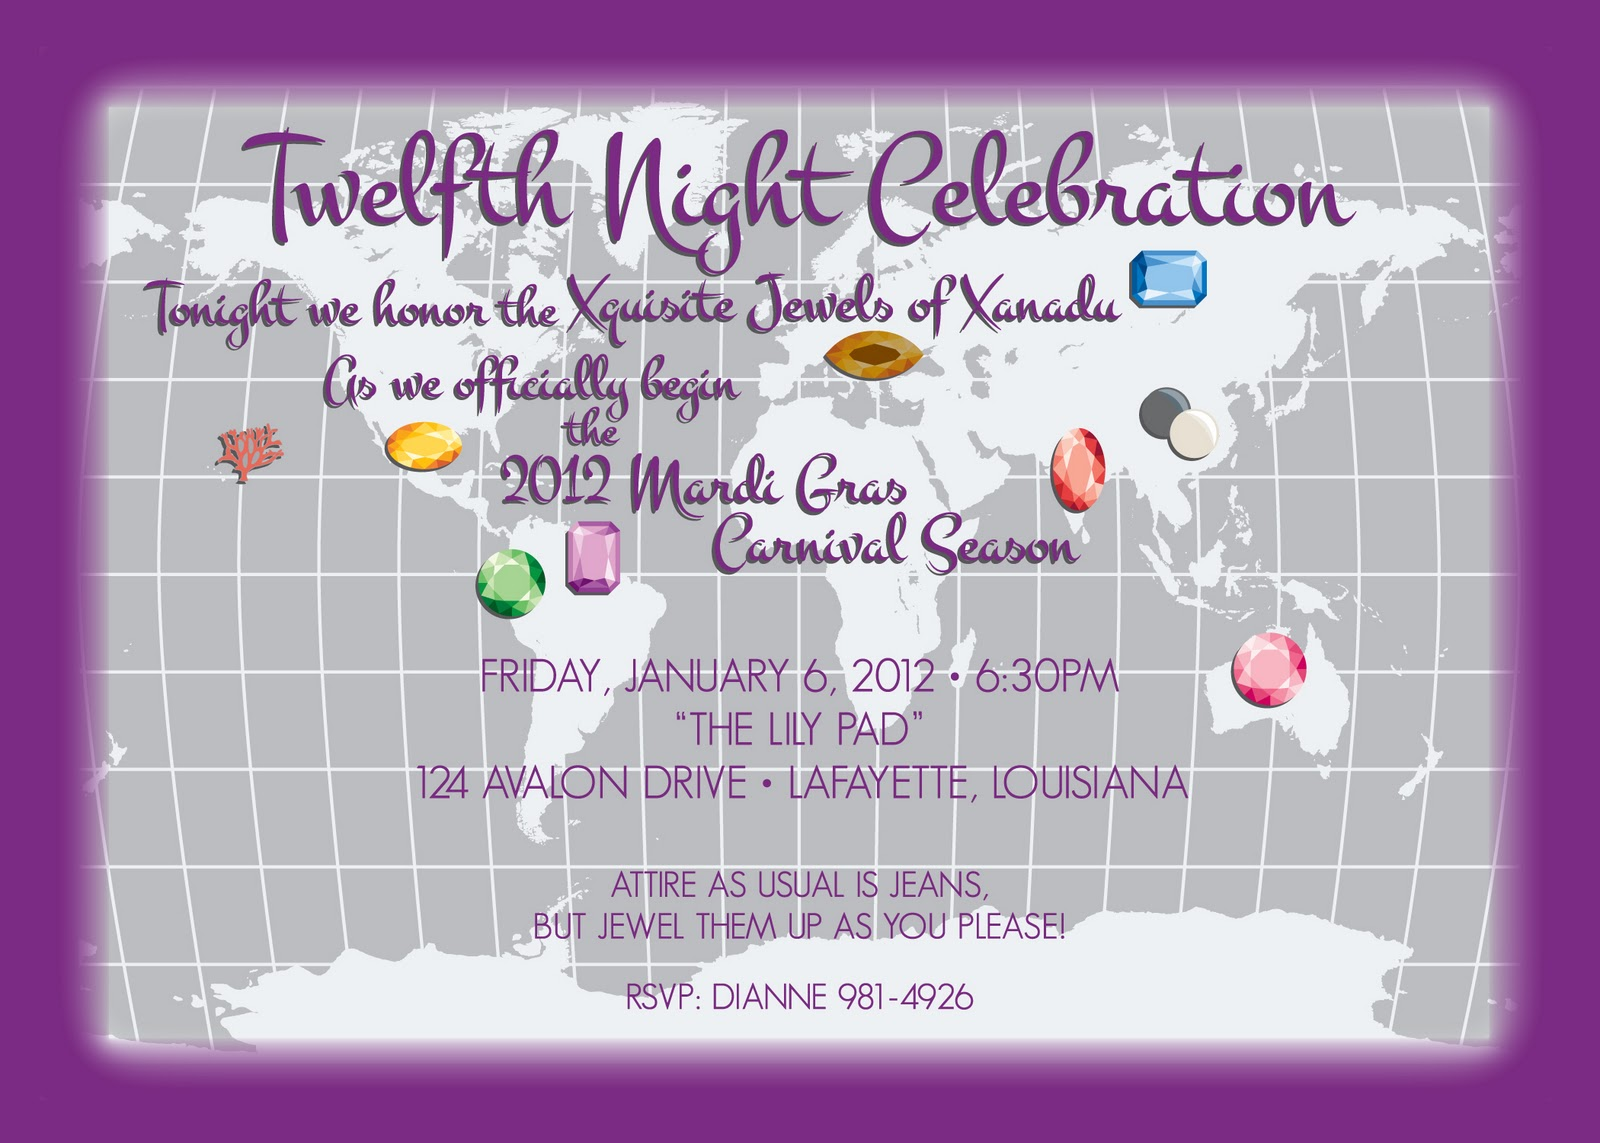 Travel Theme Invitations is good invitation design